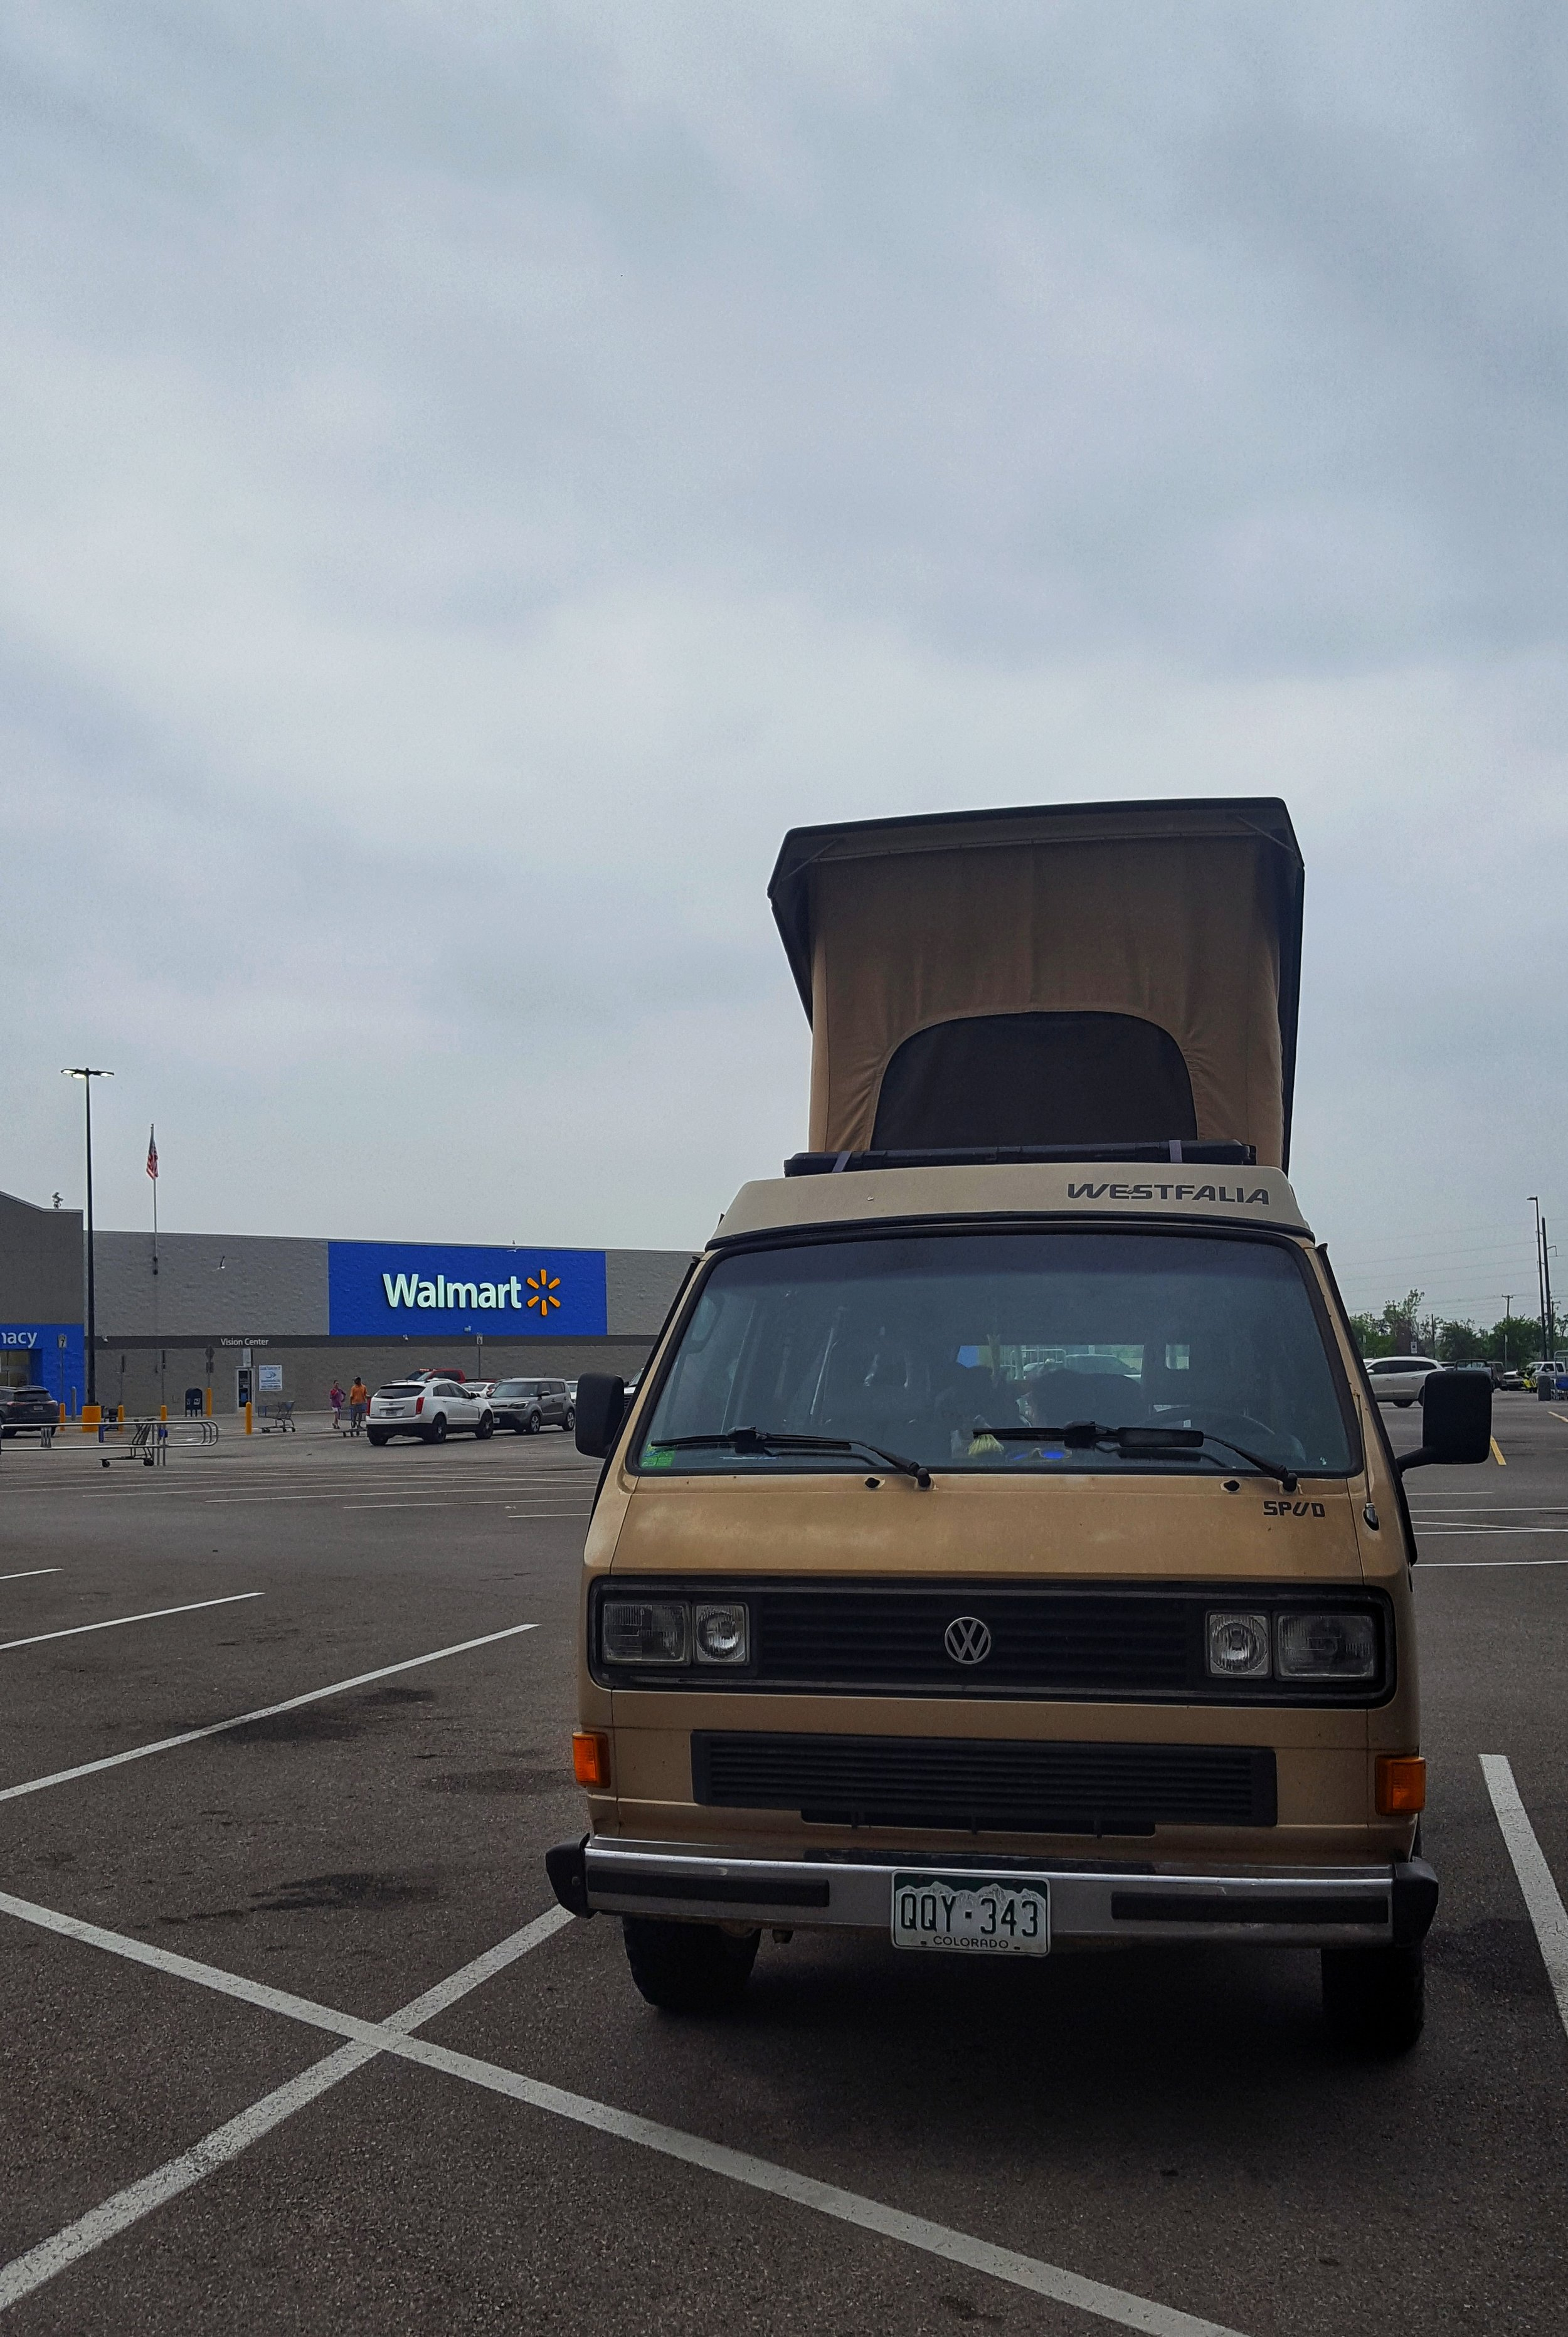 Our first-ever (and maybe last-ever) Walmart camping experience.